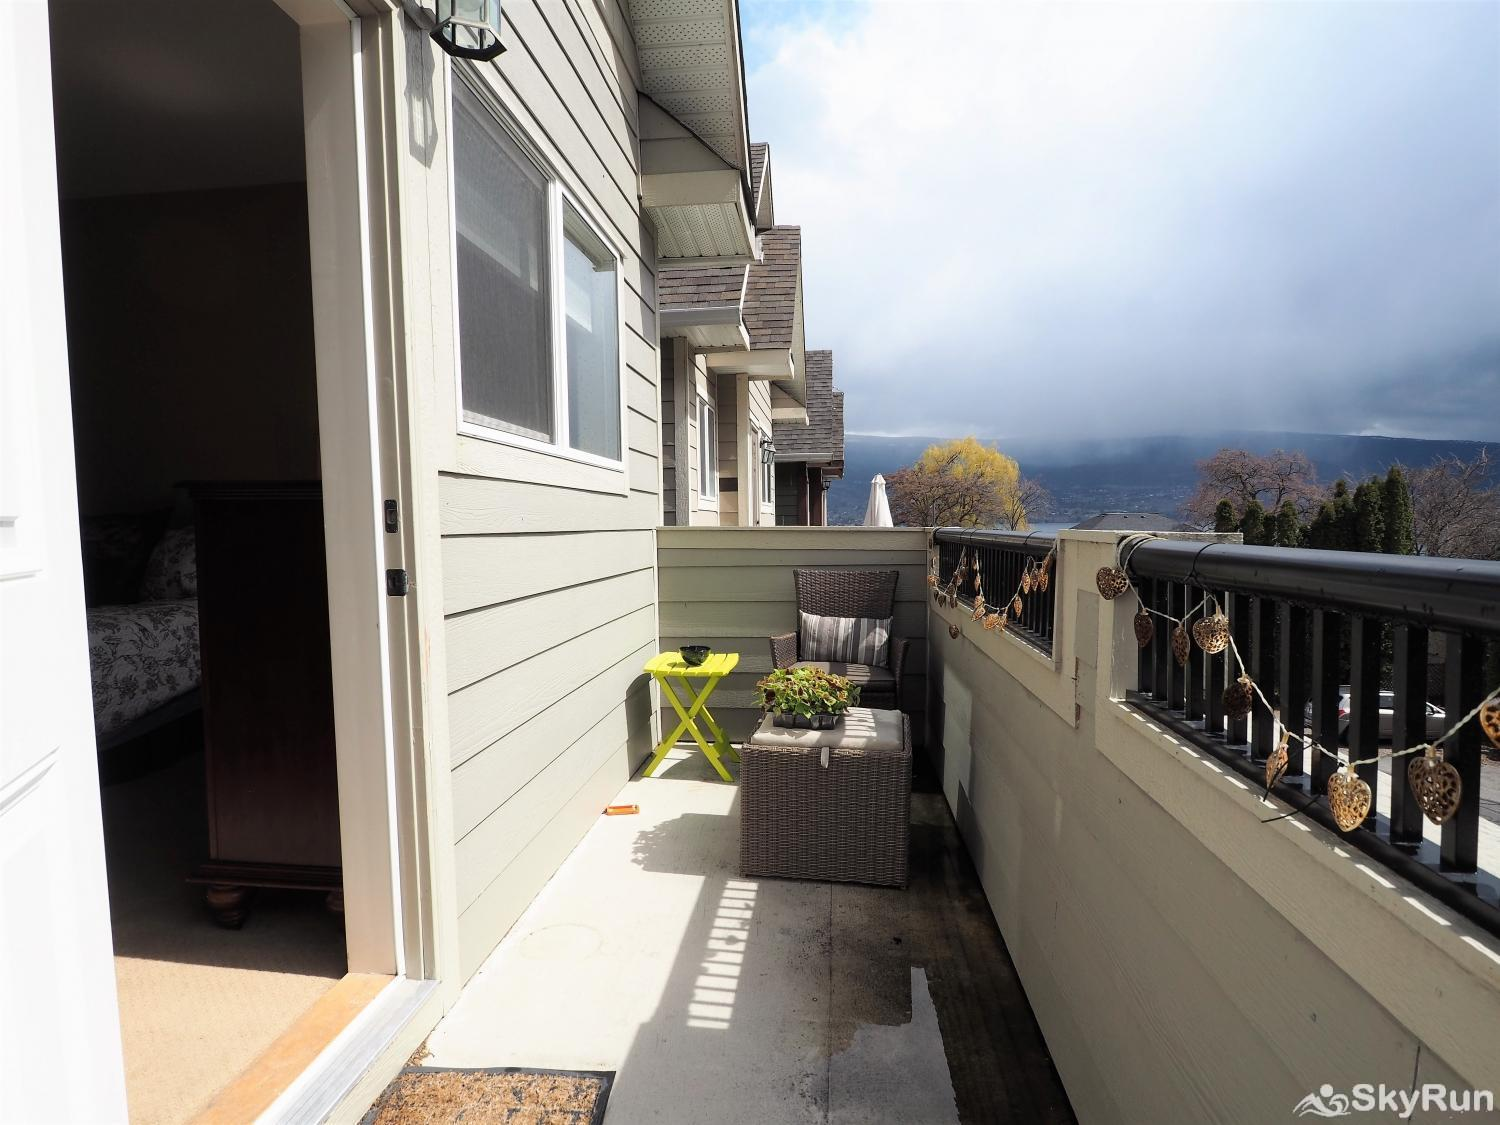 Old Summerland 4 bedroom townhouse Private patio off the master bedroom